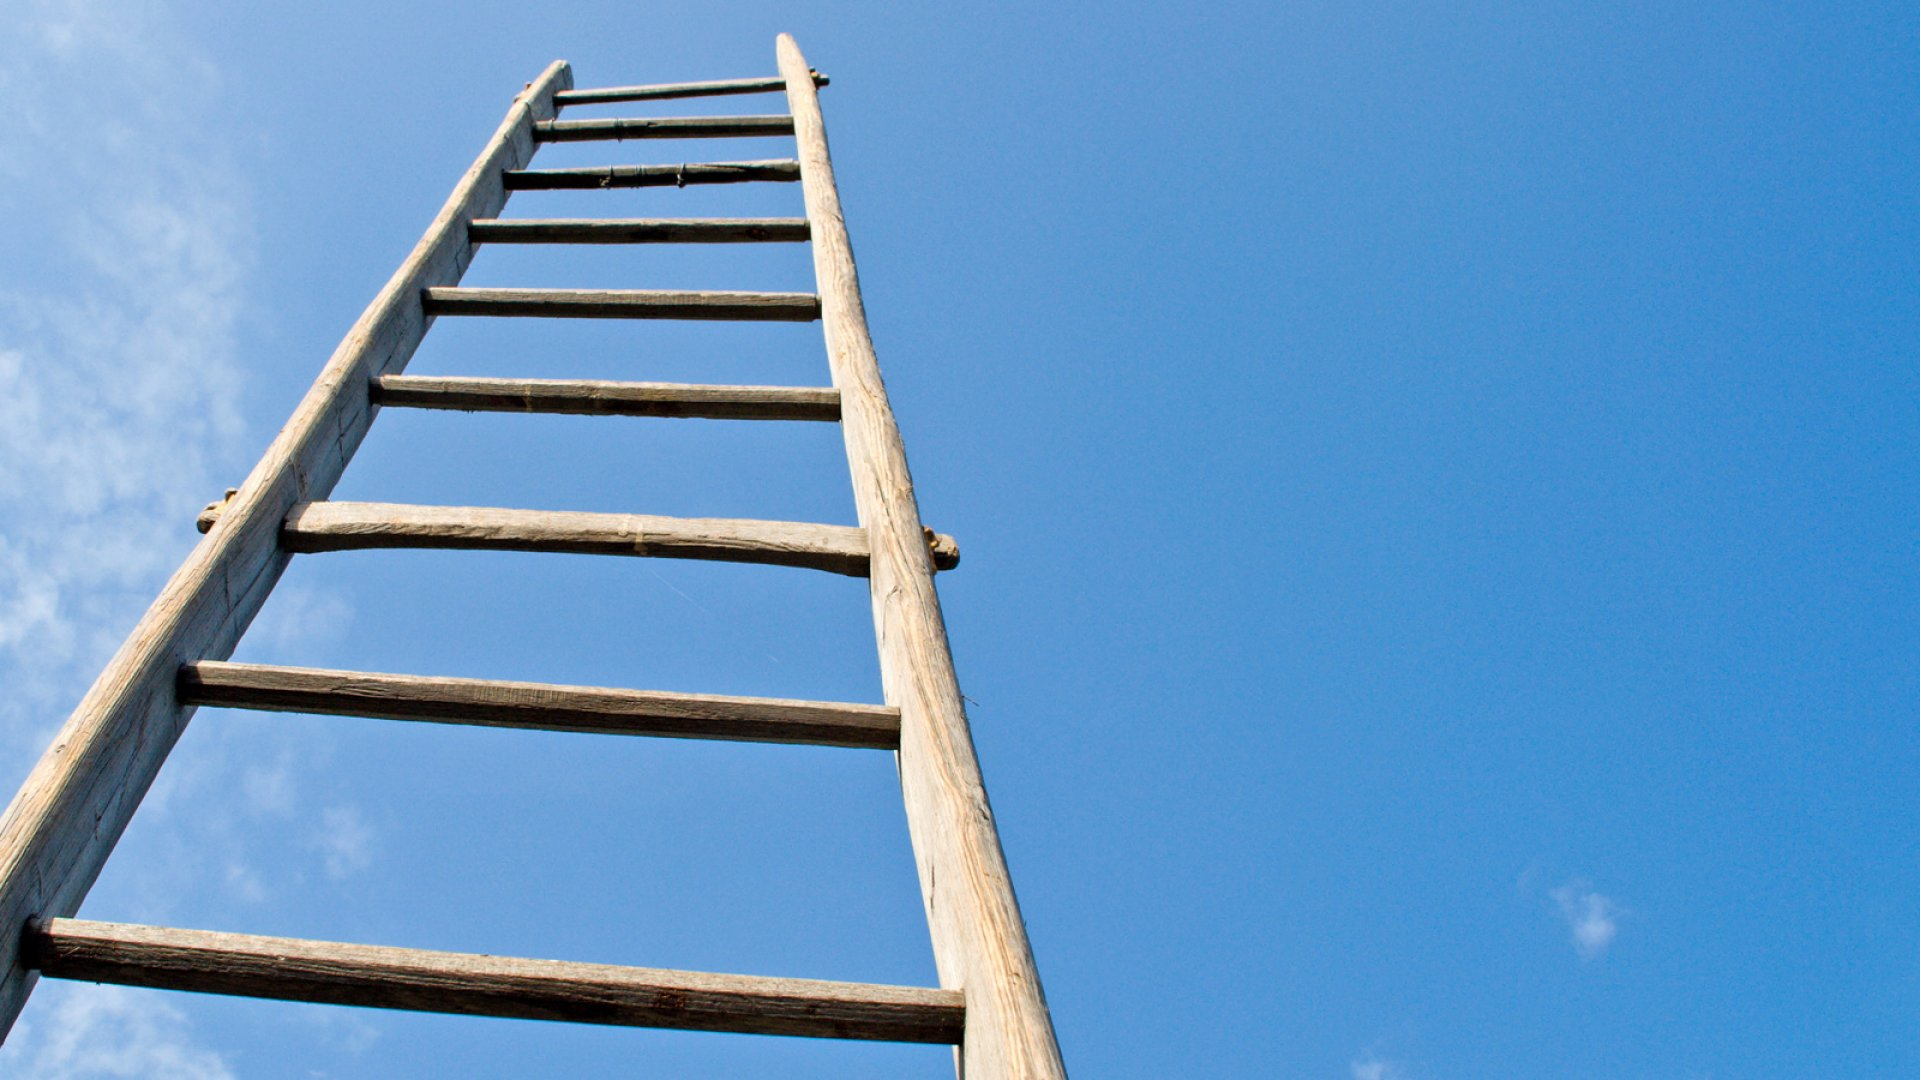 8 Tips on Climbing the Company Ladder